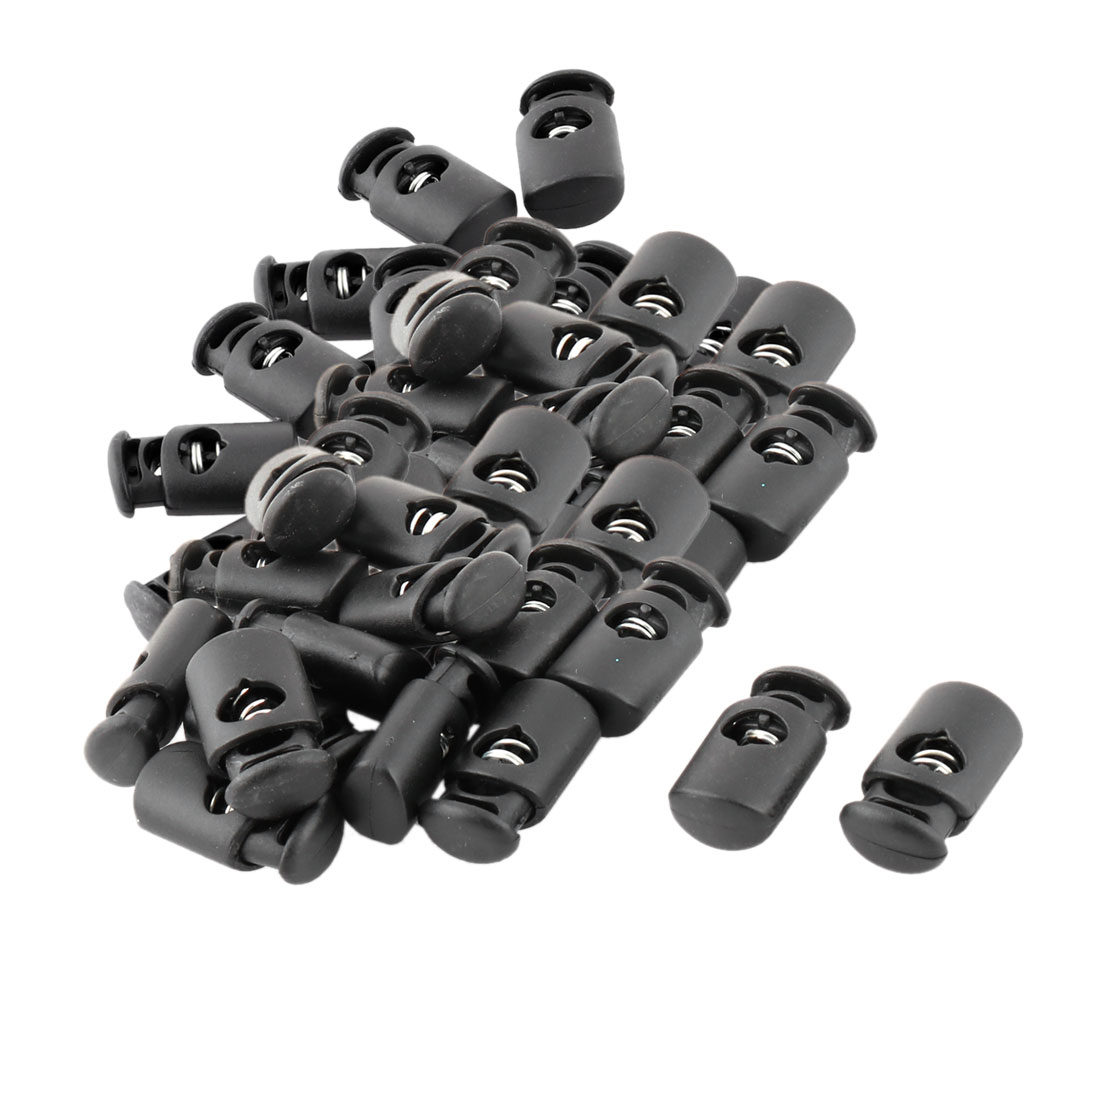 Plastic Single Hole Spring Loaded Clothes Sliding Cord Lock Stopper Black 50pcs